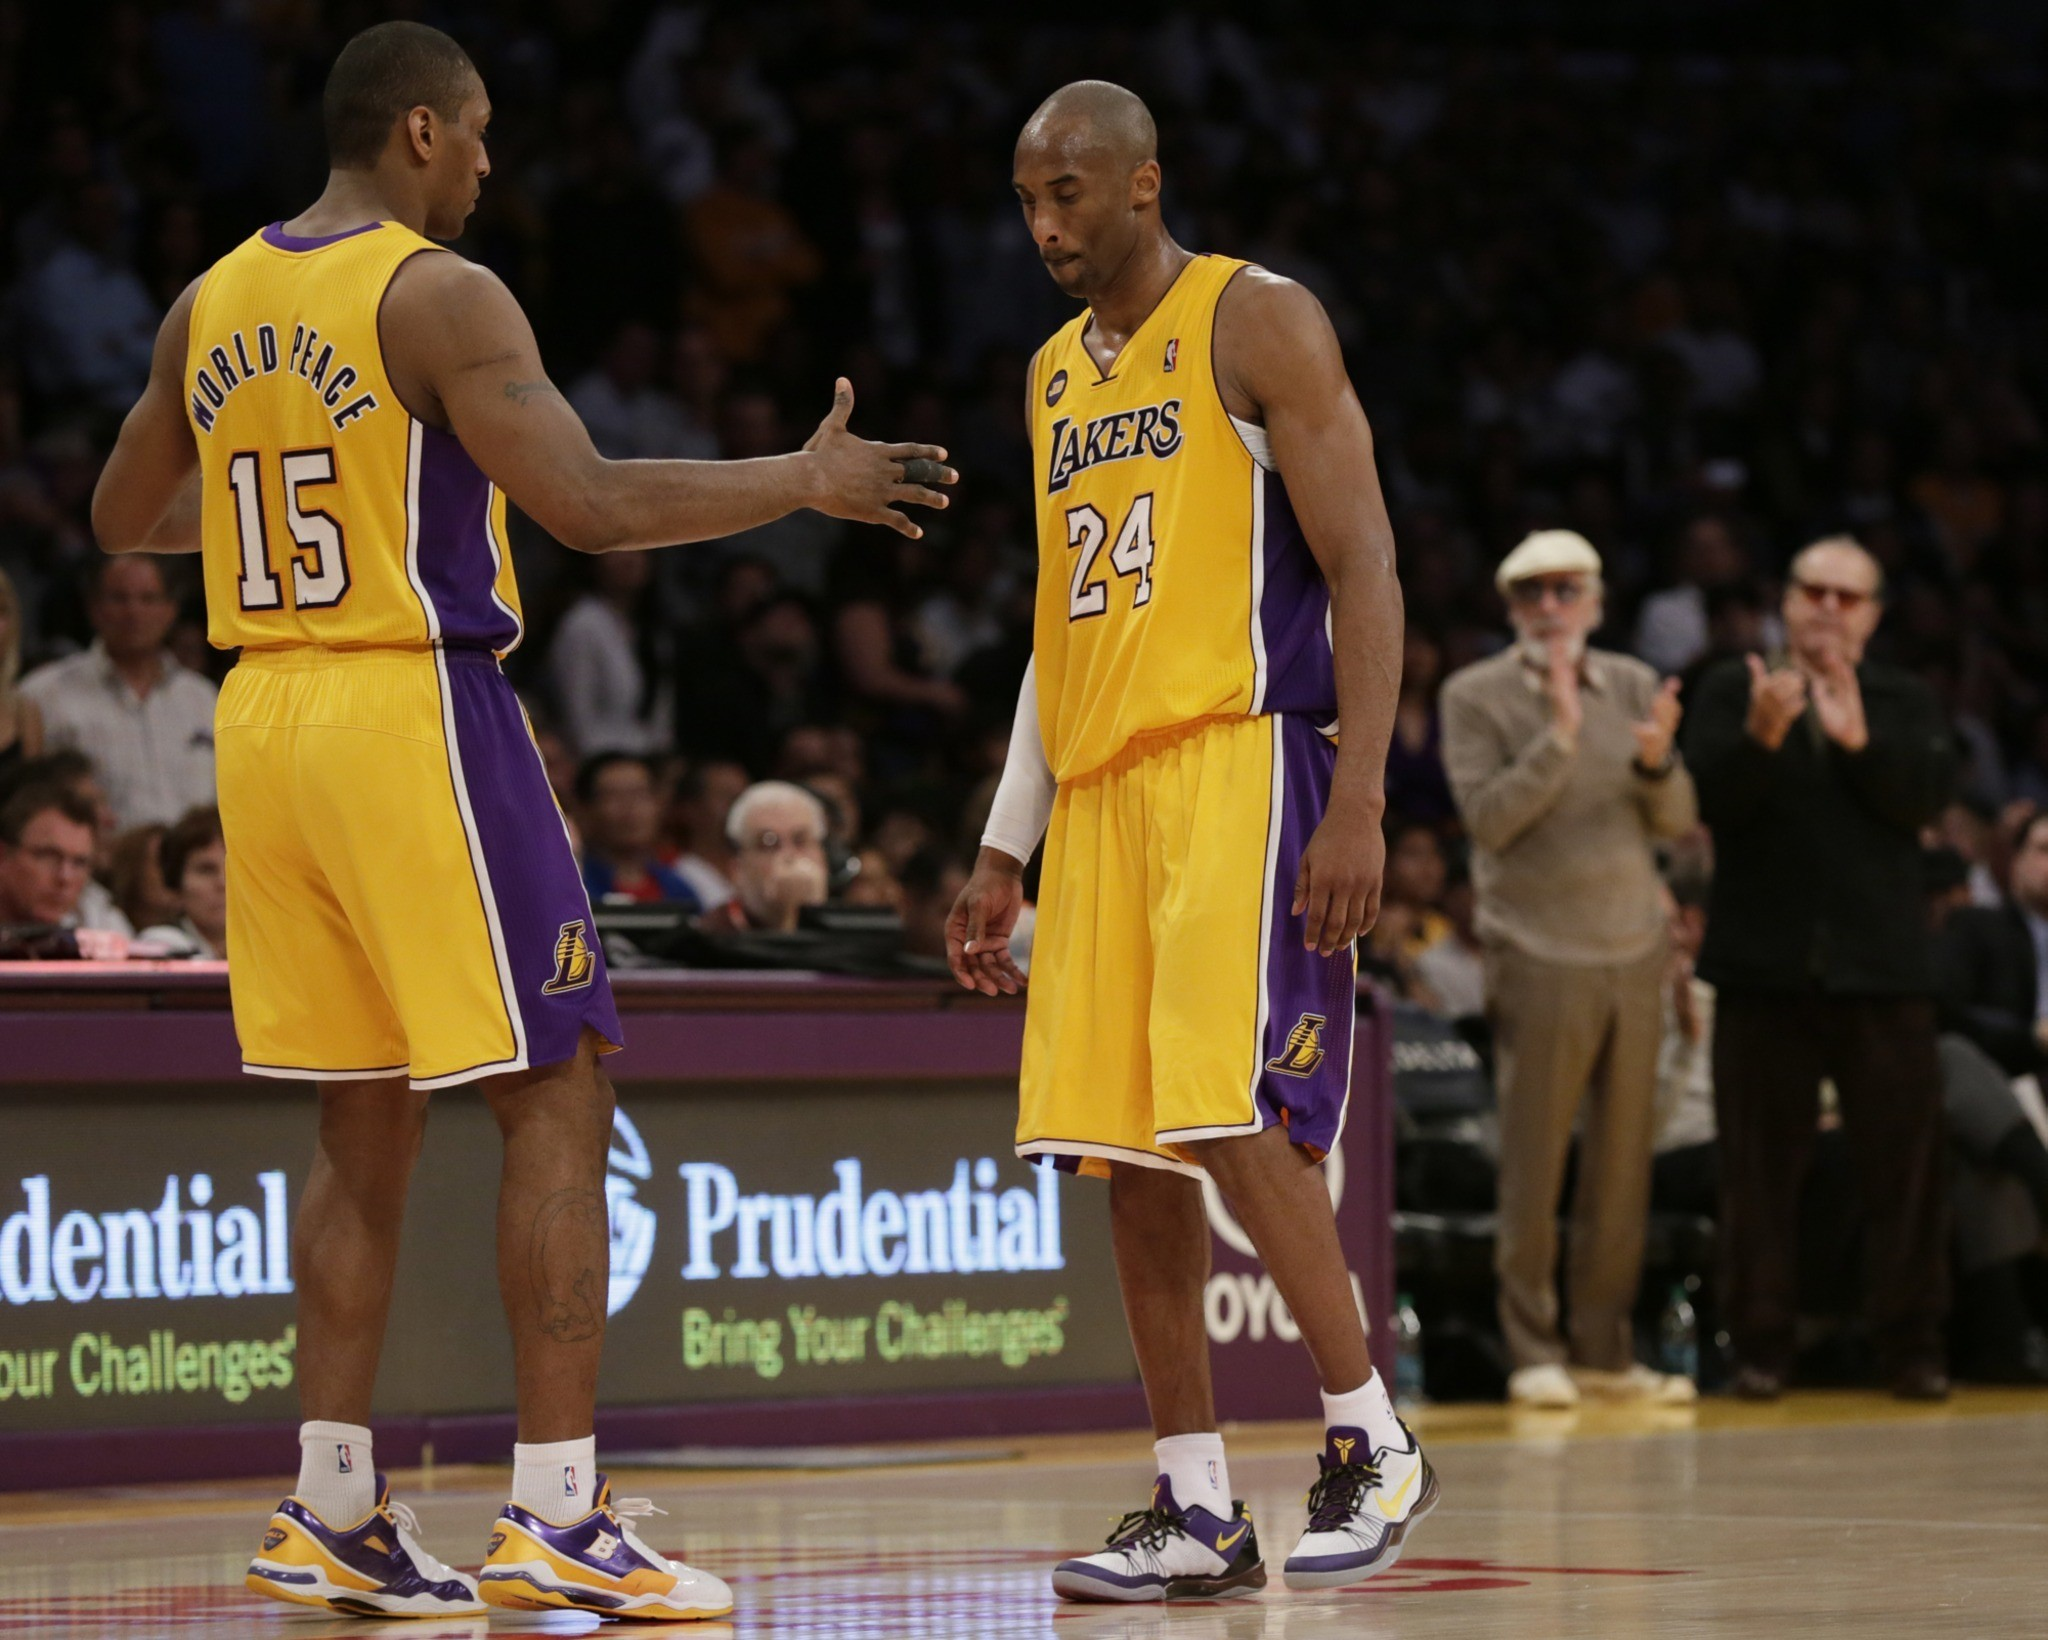 Lakers vs. Golden State Warriors - Metta World Peace, Kobe Bryant